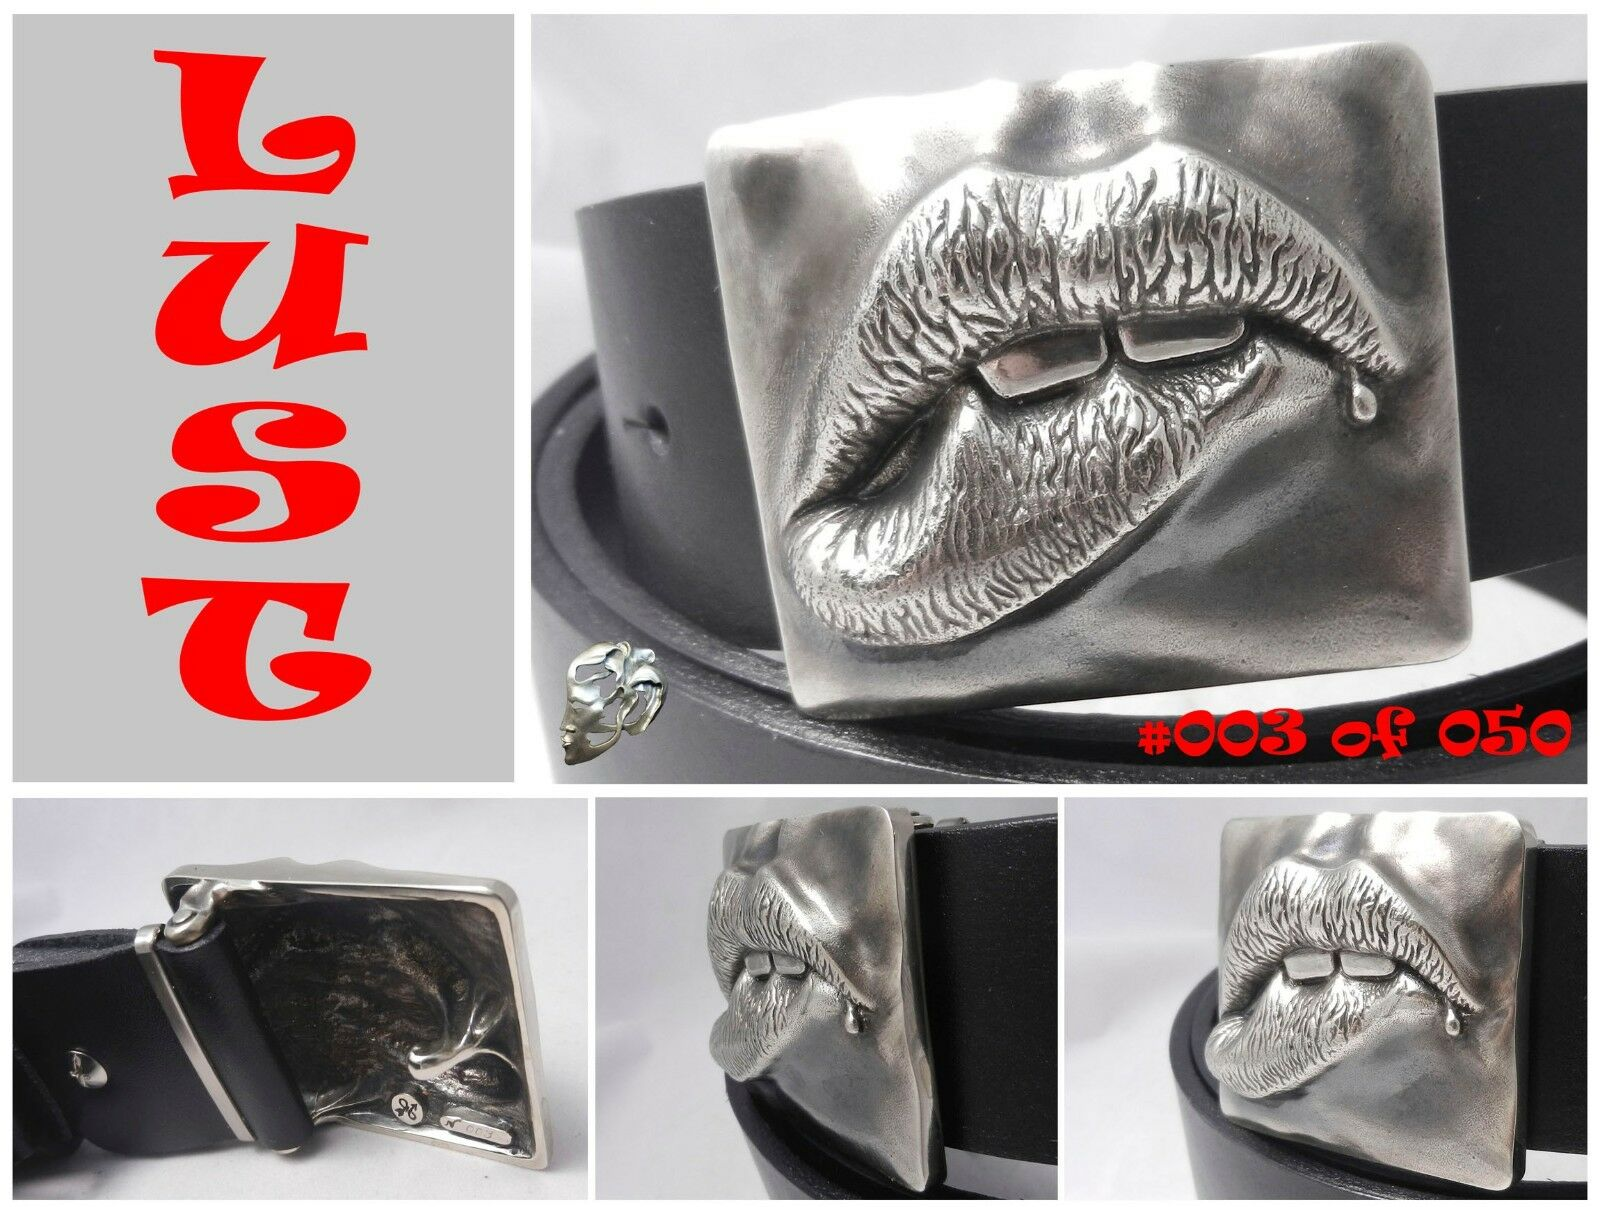 Lust Buckle Limited Edition with FREE Leather strip, Nickel-silver